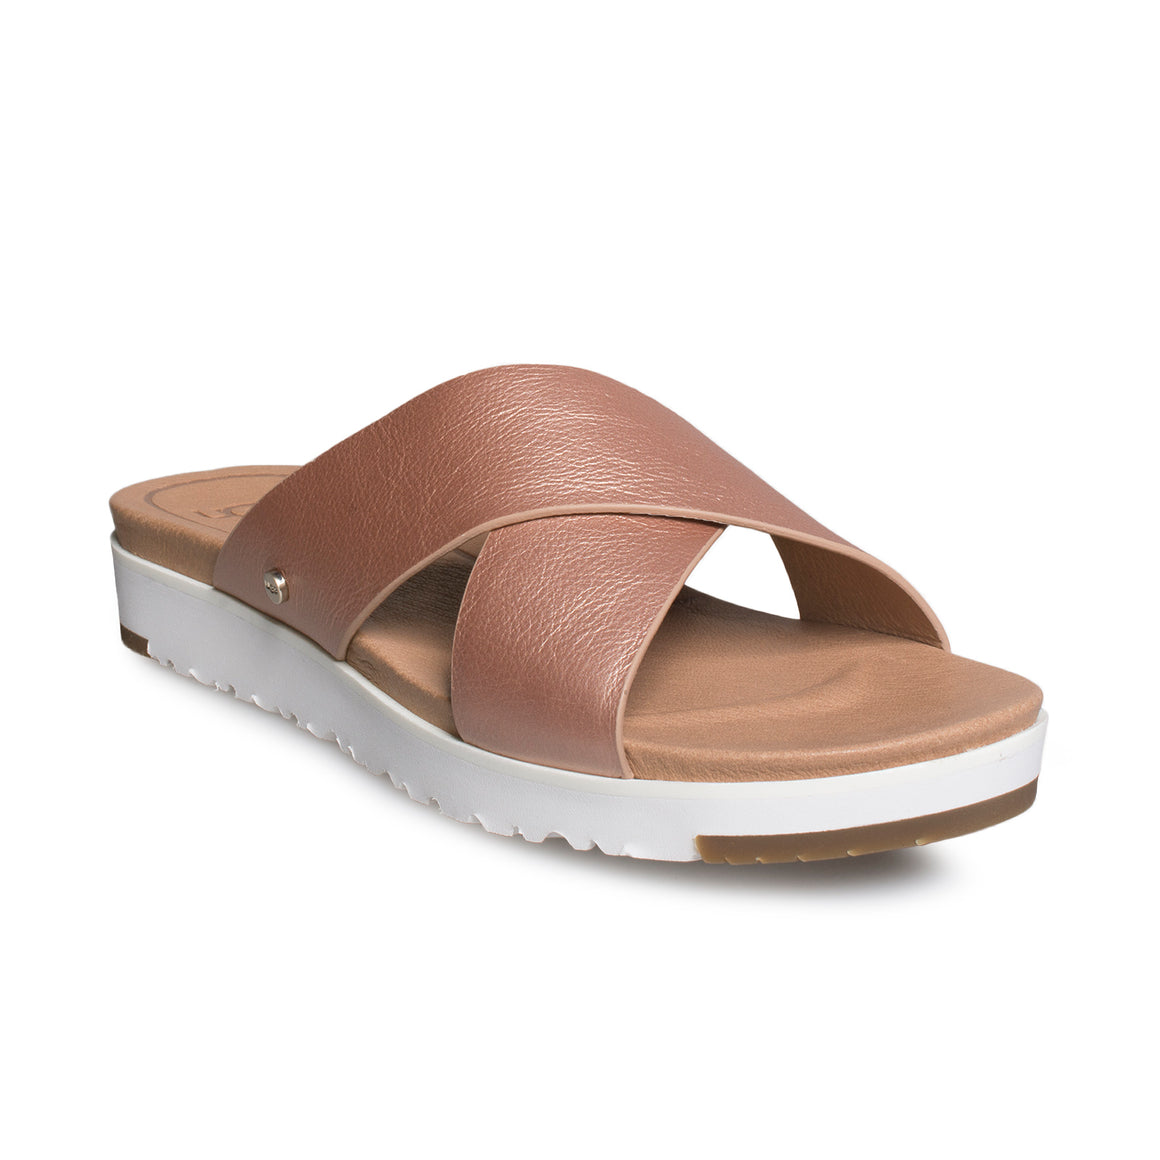 UGG Kari Metallic Rose Gold Sandals - Women's